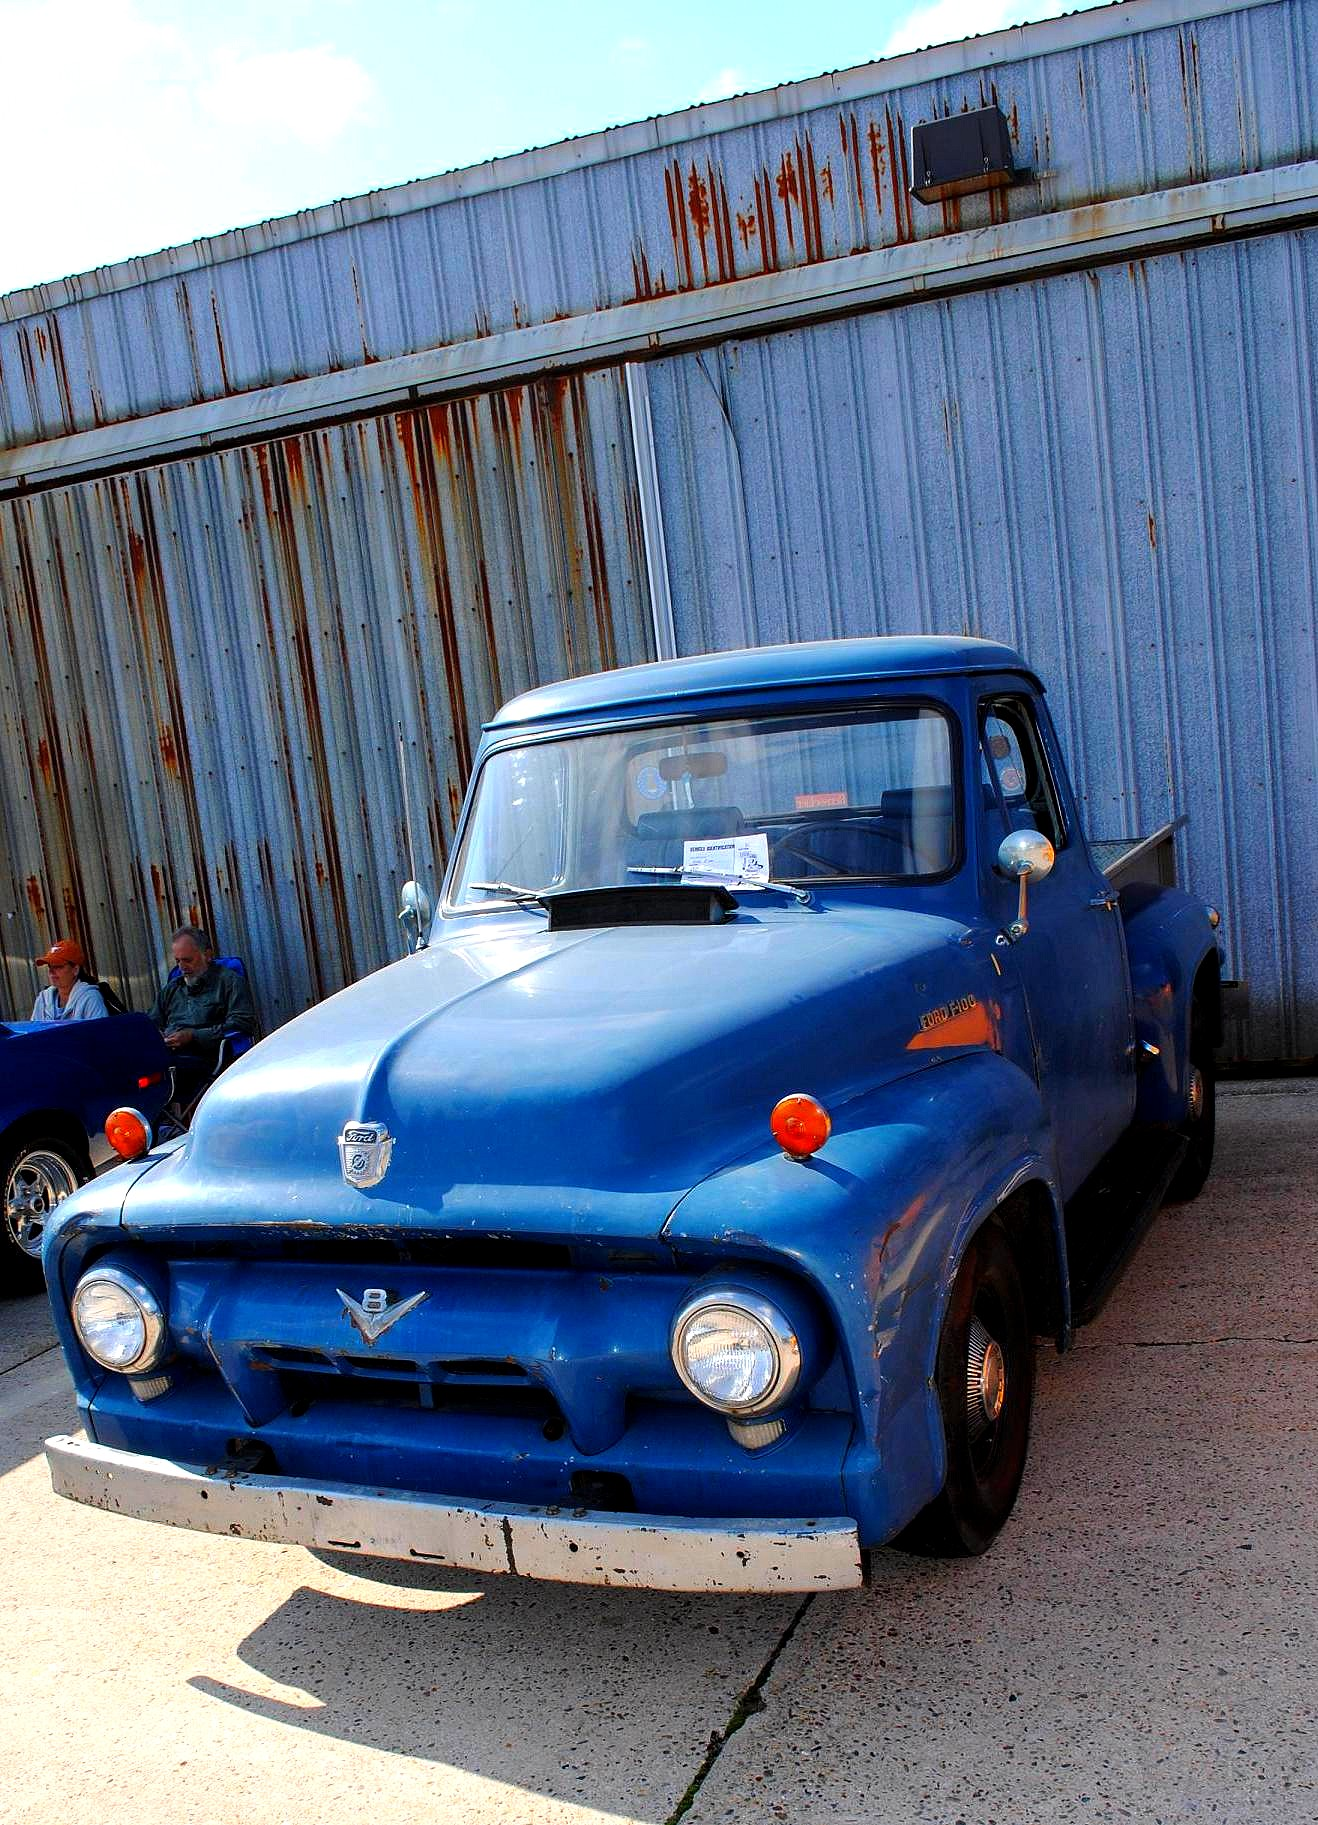 File:A classic Ford V8 pick up truck 2011 Wings & Wheels Event.jpg ...